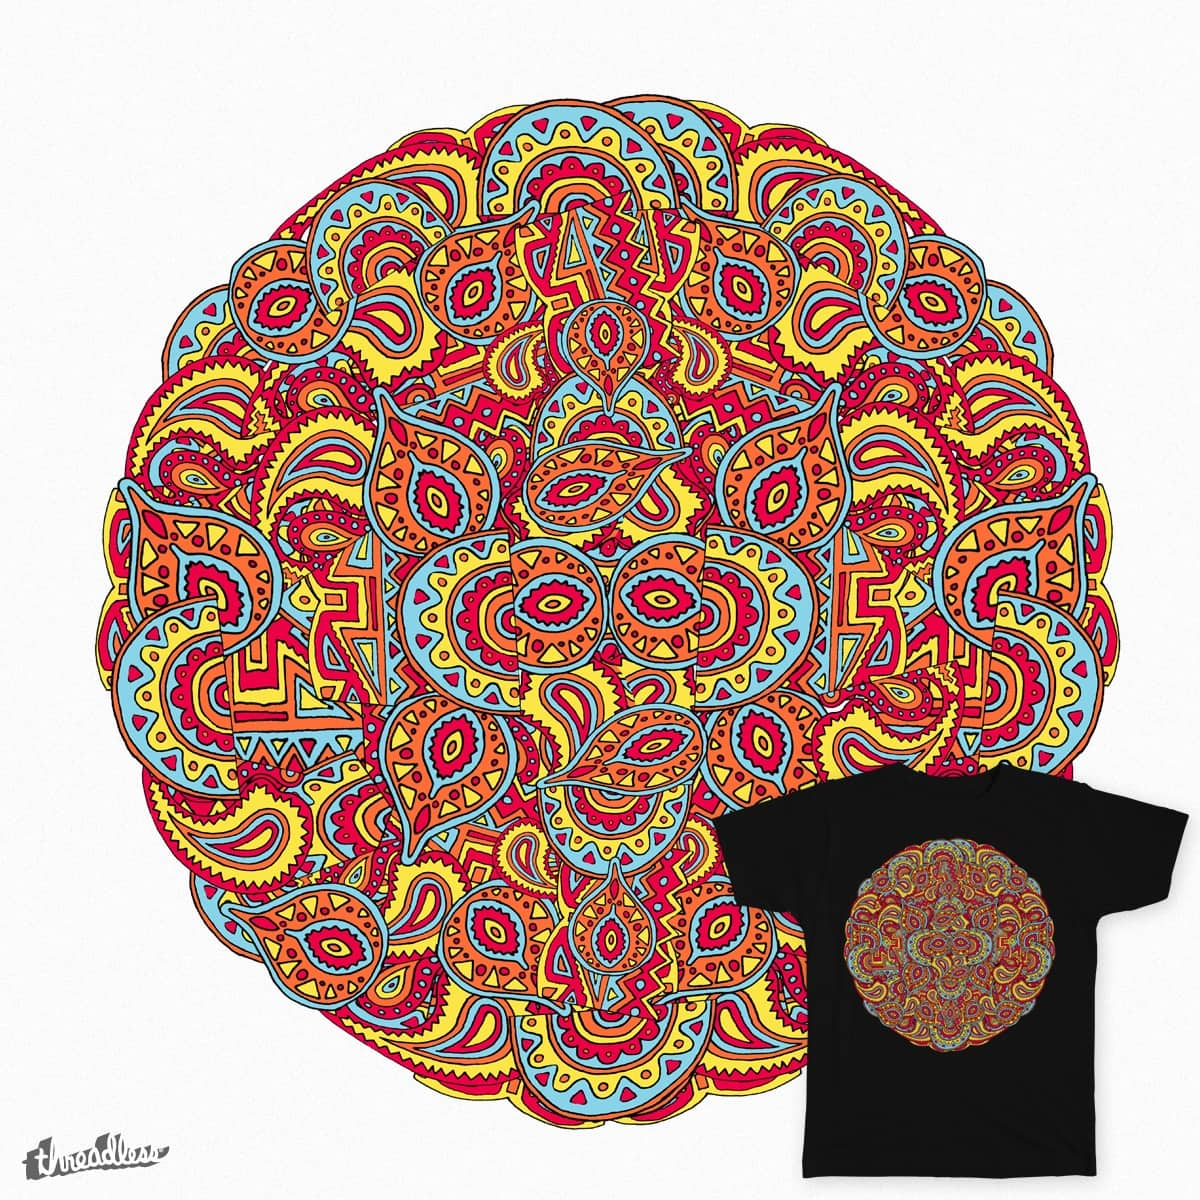 Psychedelia day 2 by richsaenz on Threadless